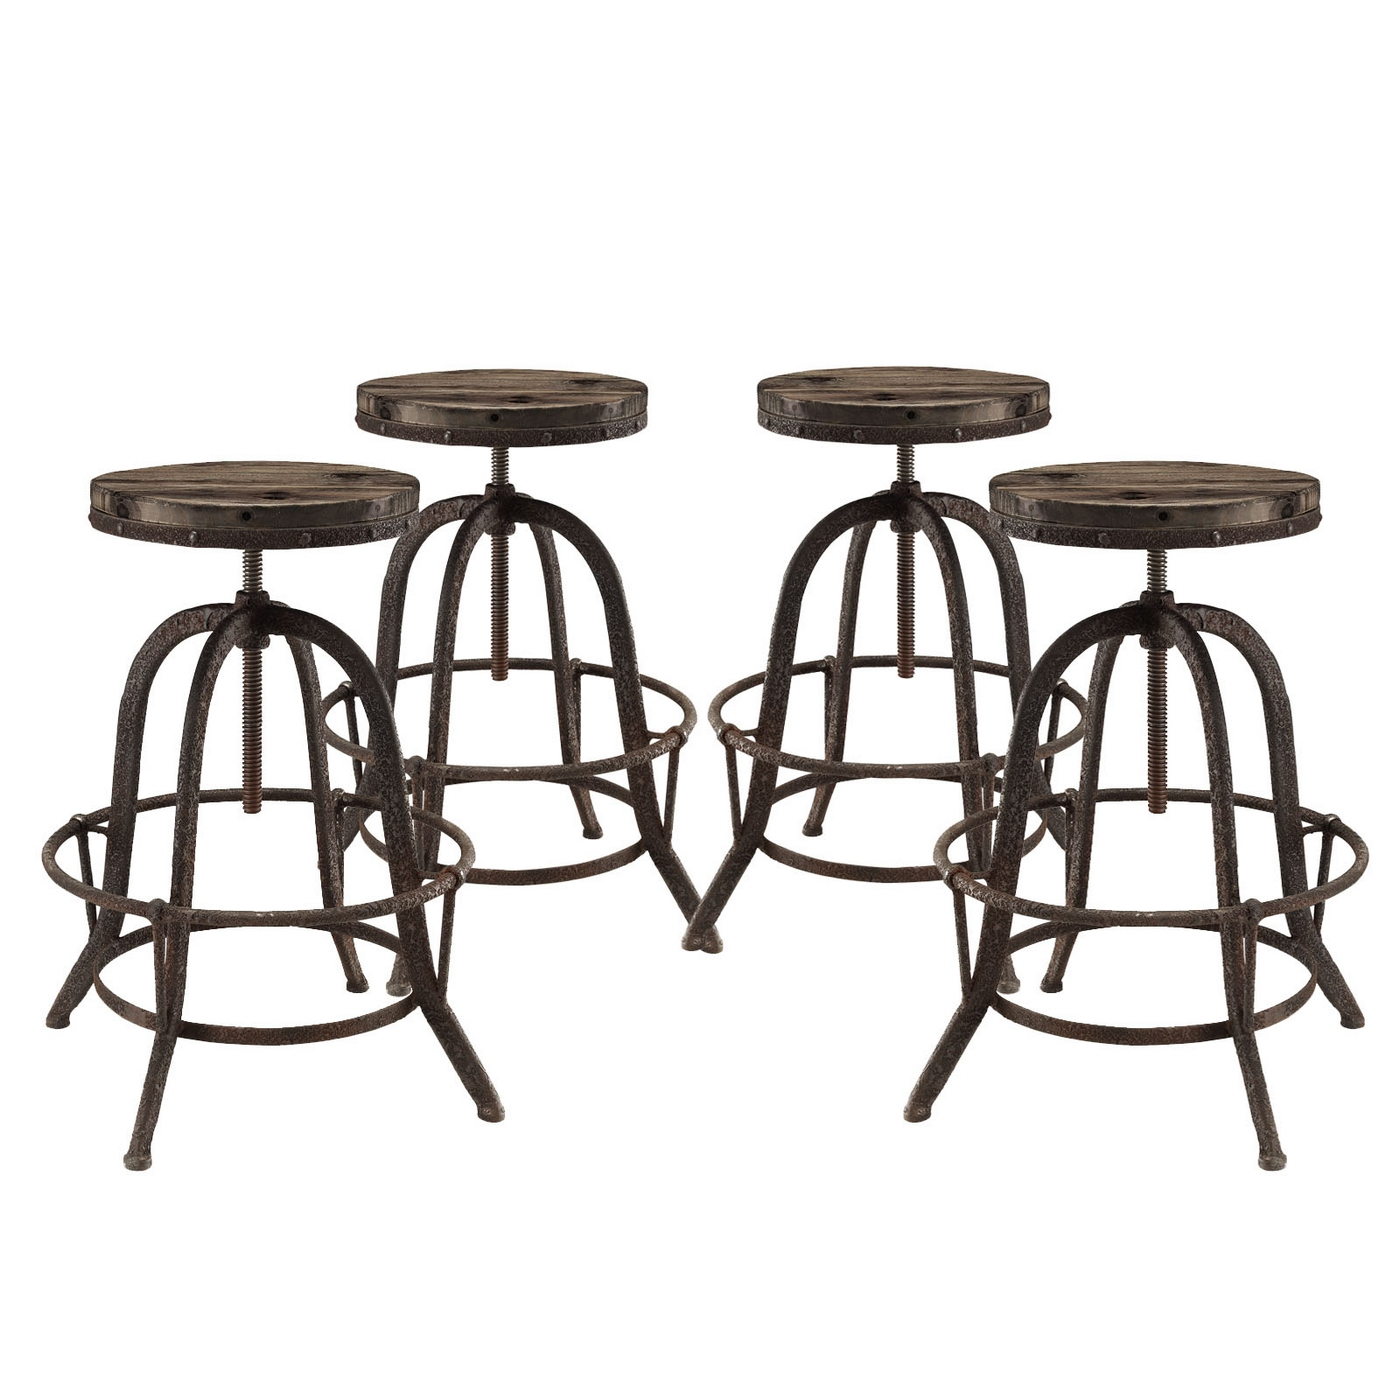 Set Of 4 Collect Industrial Bar Stool w Wood Seat amp Cast  : set of 4 collect industrial bar stool w wood seat cast iron frame brown 14 from www.ebay.com size 1400 x 1400 jpeg 403kB